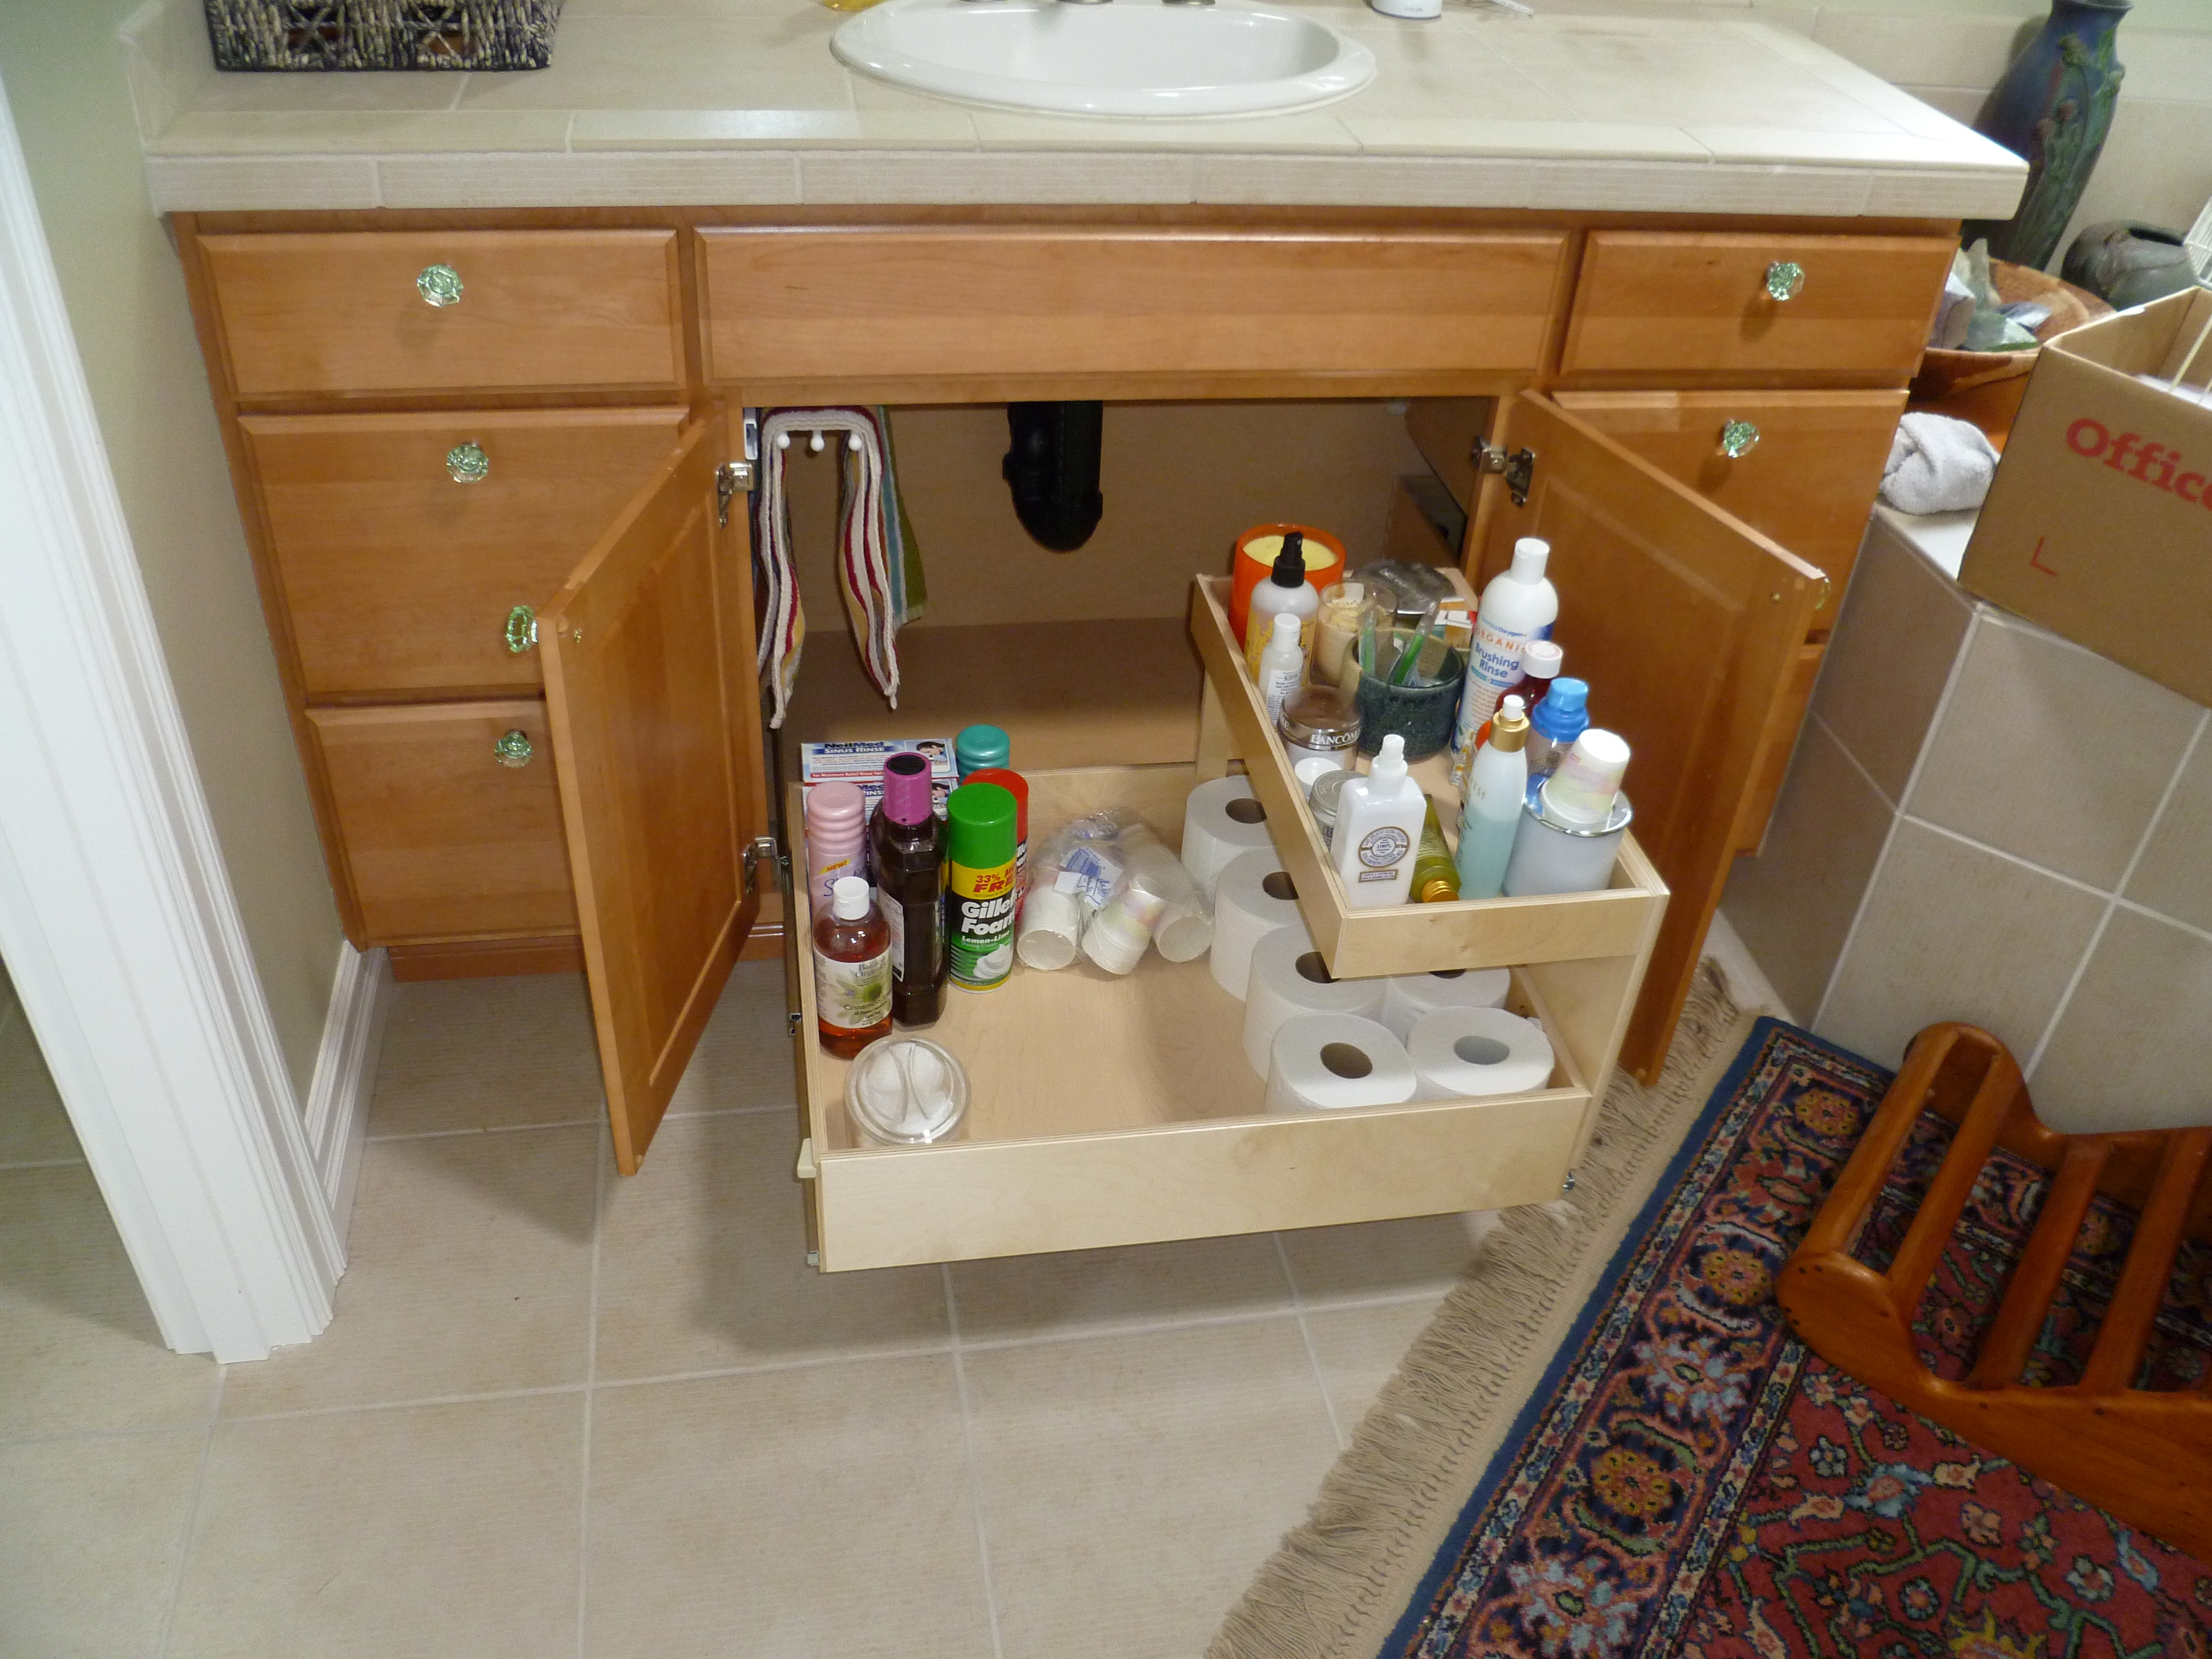 Bathroom Vanity Roll Out Shelf